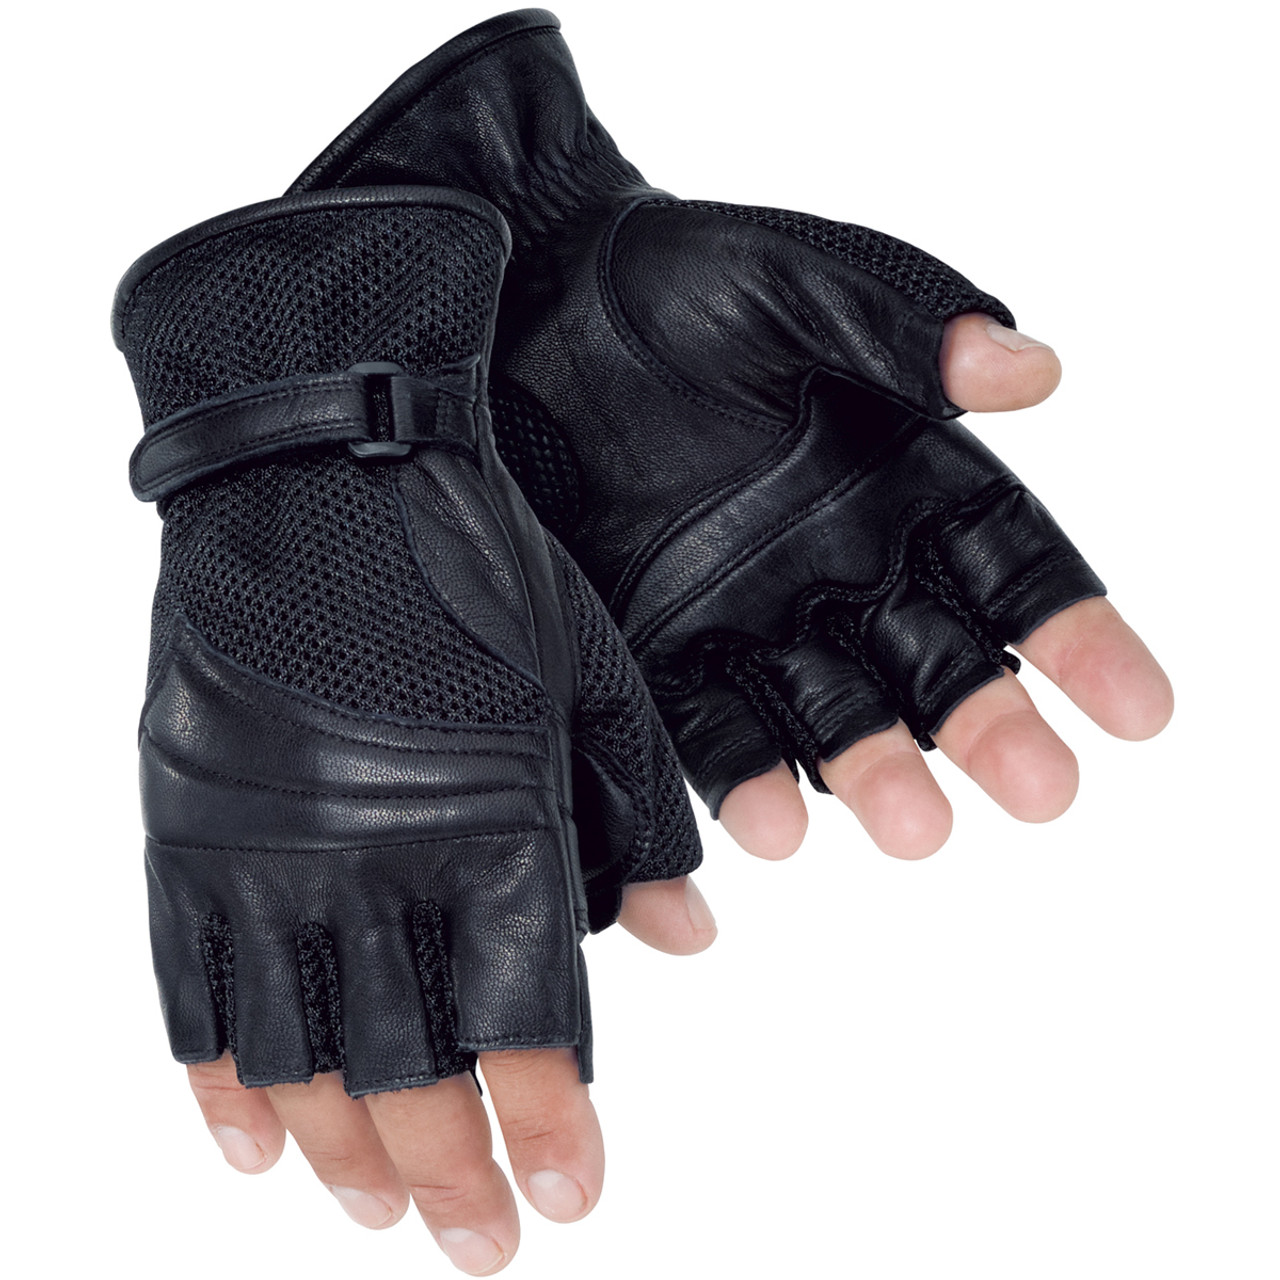 Indian Motorcycle Mens Leather Fingerless Gloves 4XL Black